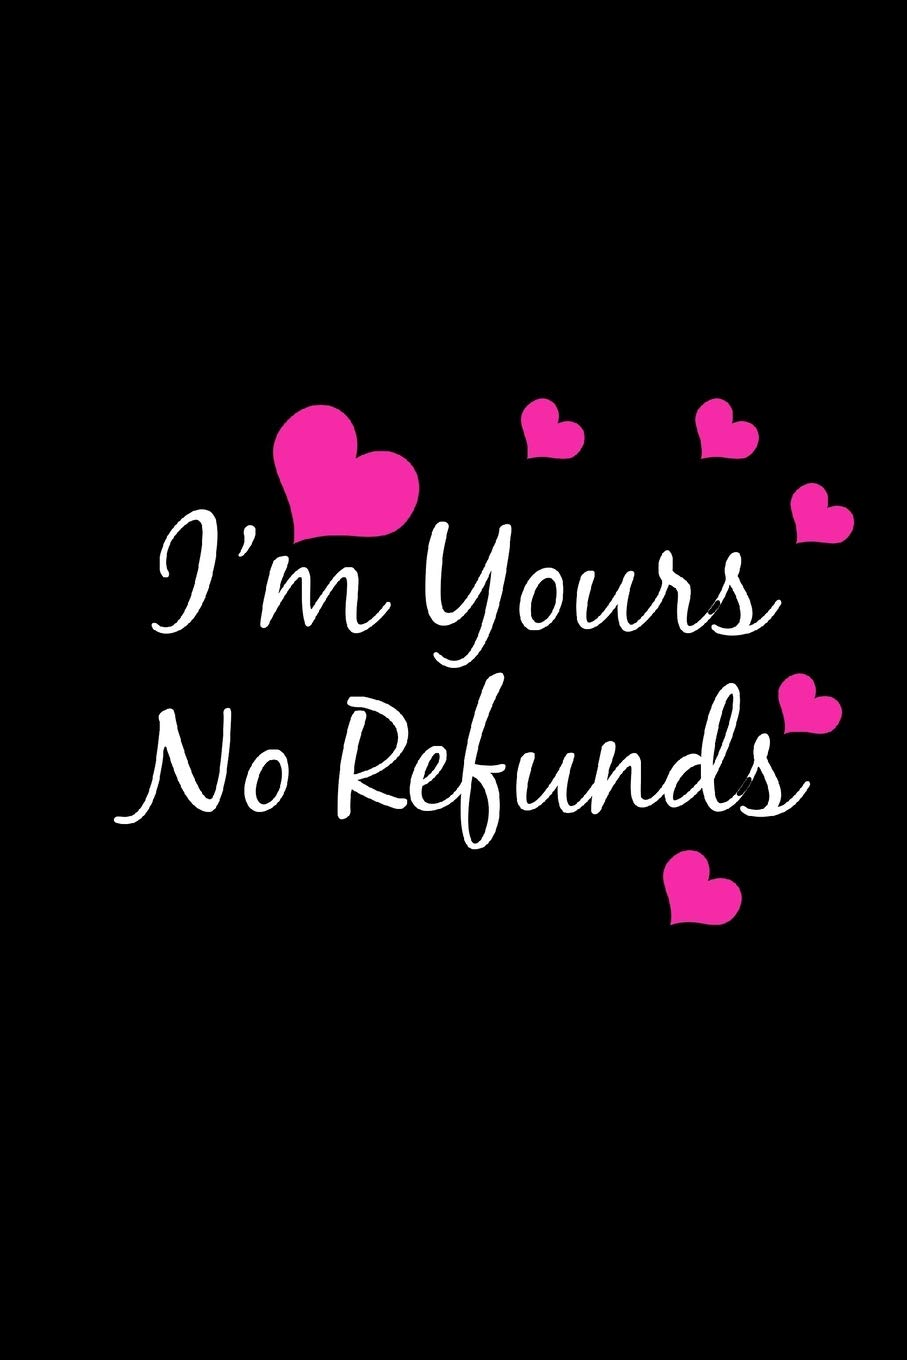 I M Yours No Refunds Funny Gag Gifts For Boyfriend Birthday Gifts Unique Christmas Gift Ideas For Husband Small Lined Notebook Press Magical Elf Starlight 9781712688168 Amazon Com Books